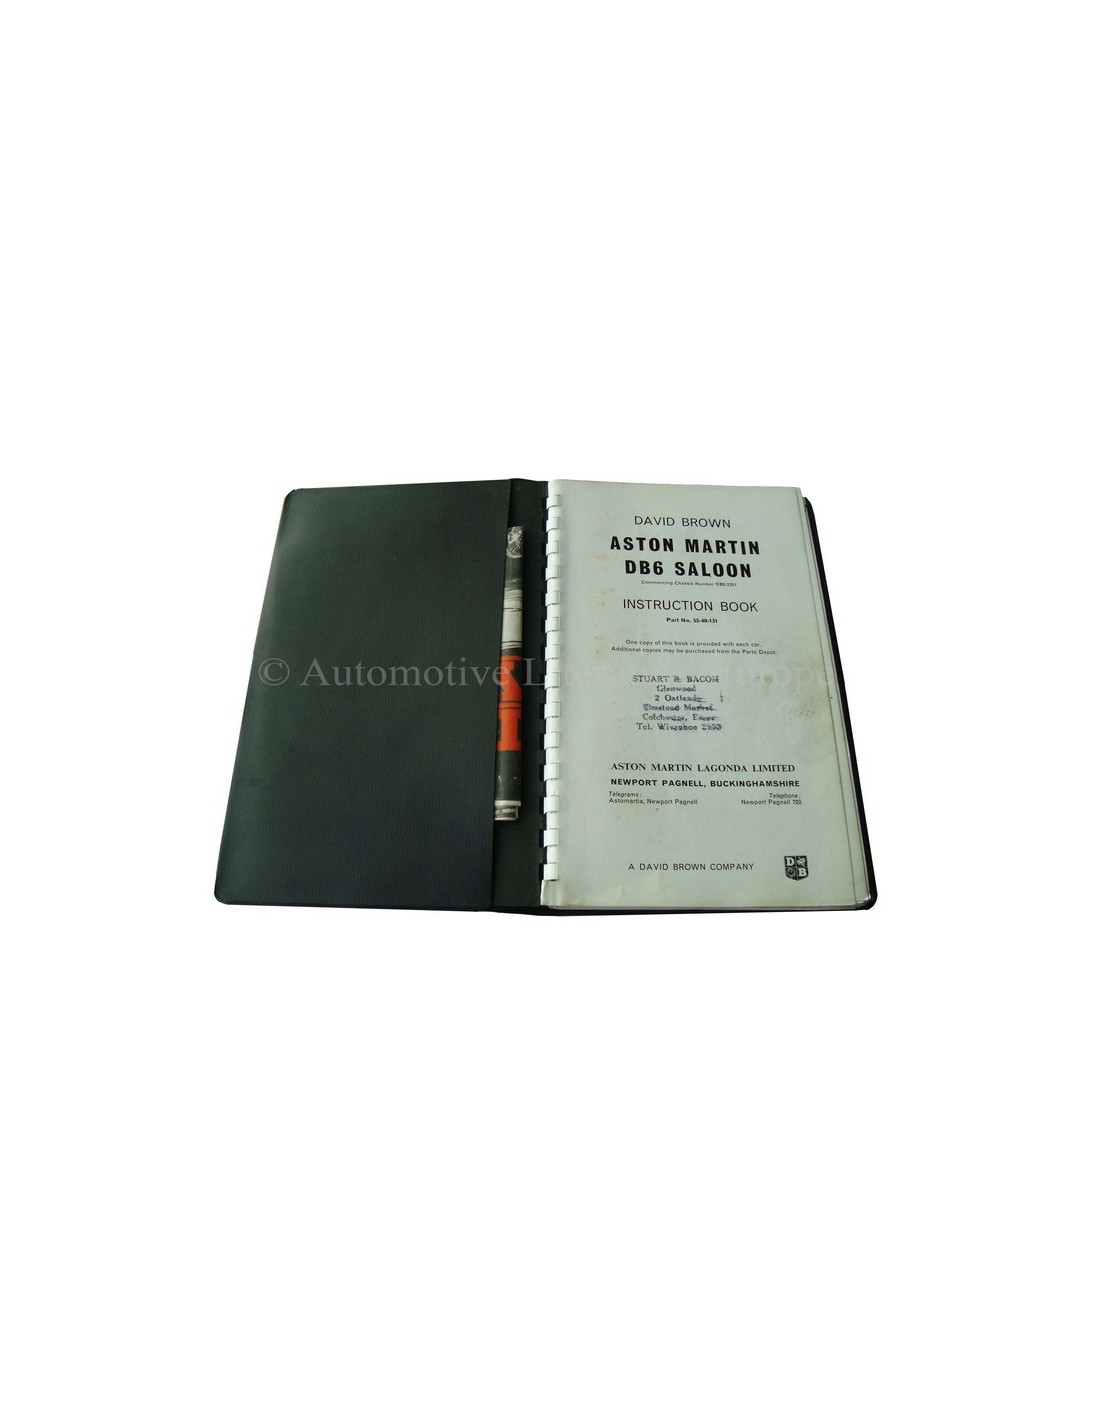 1967 Aston Martin Db6 Saloon Owners Manual English border=